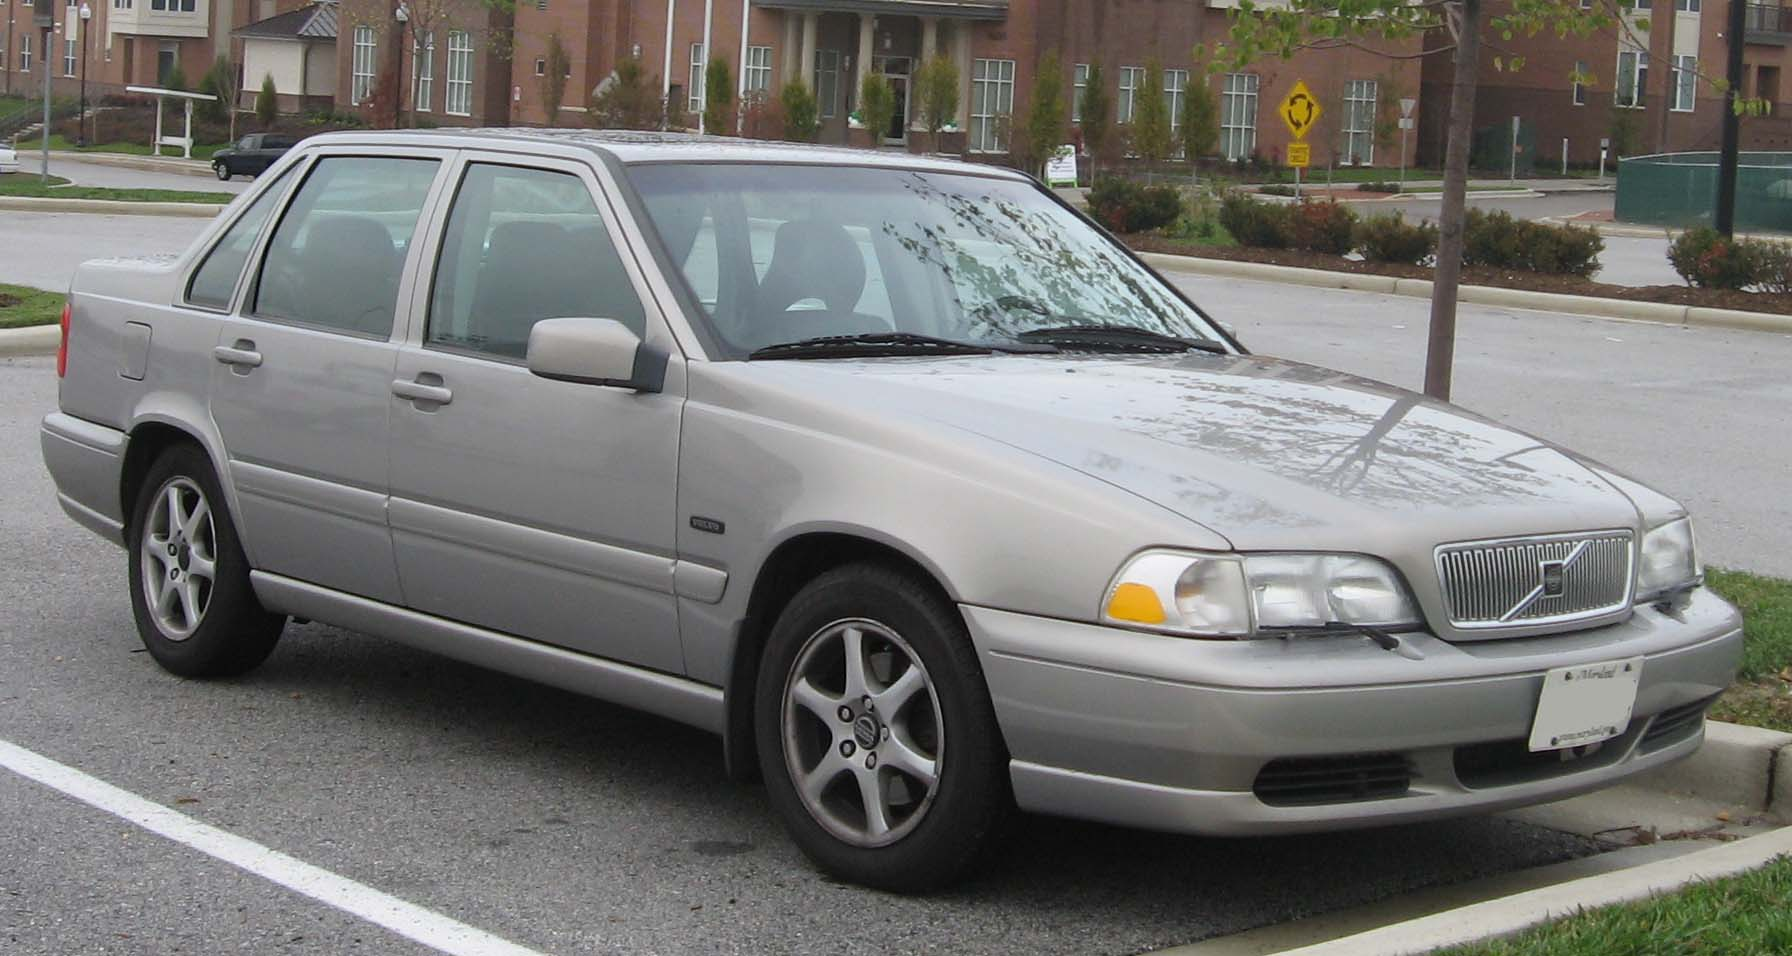 File:Volvo-S70.jpg - Wikimedia Commons